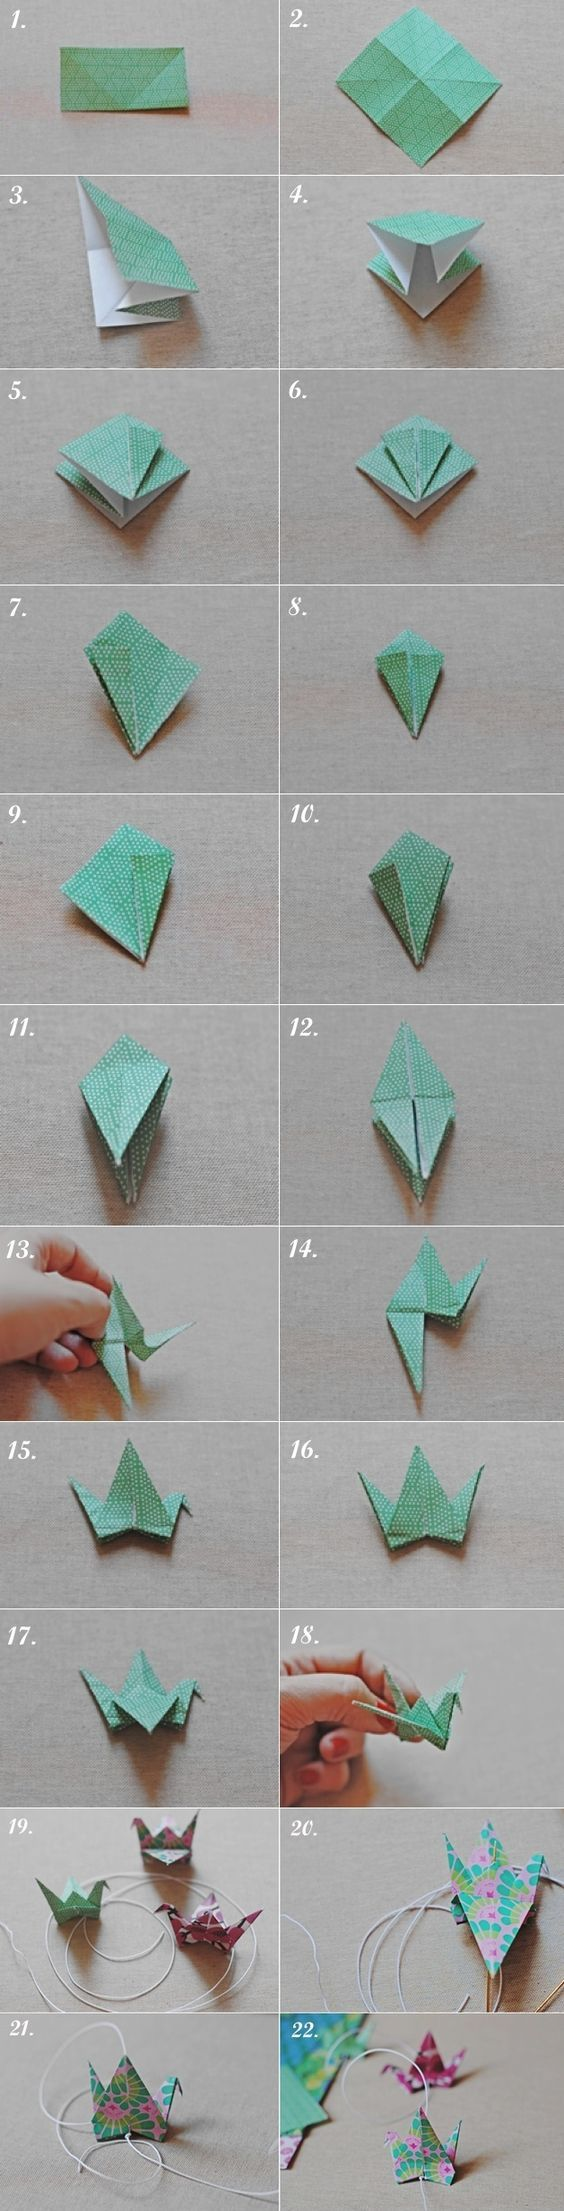 25 best ideas about origami cranes on pinterest origami for Origami curtain